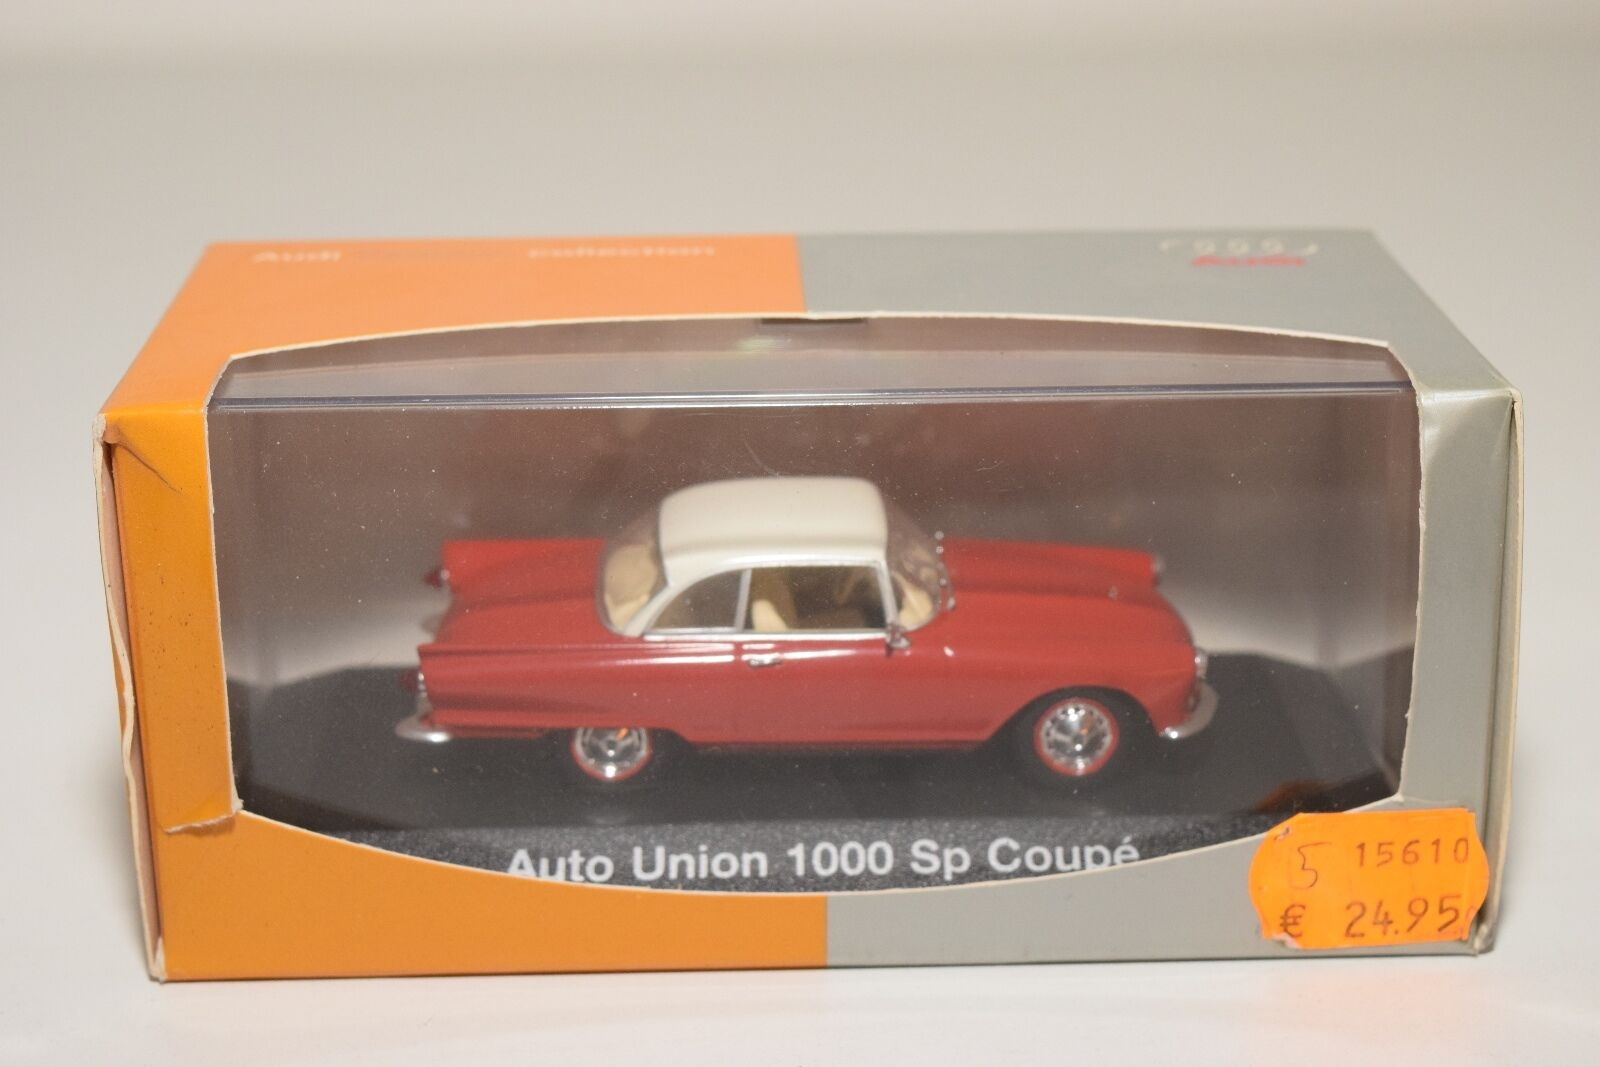 . MINICHAMPS AUTO UNION 1000 SP COUPE rosso CREAM MINT scatolaED